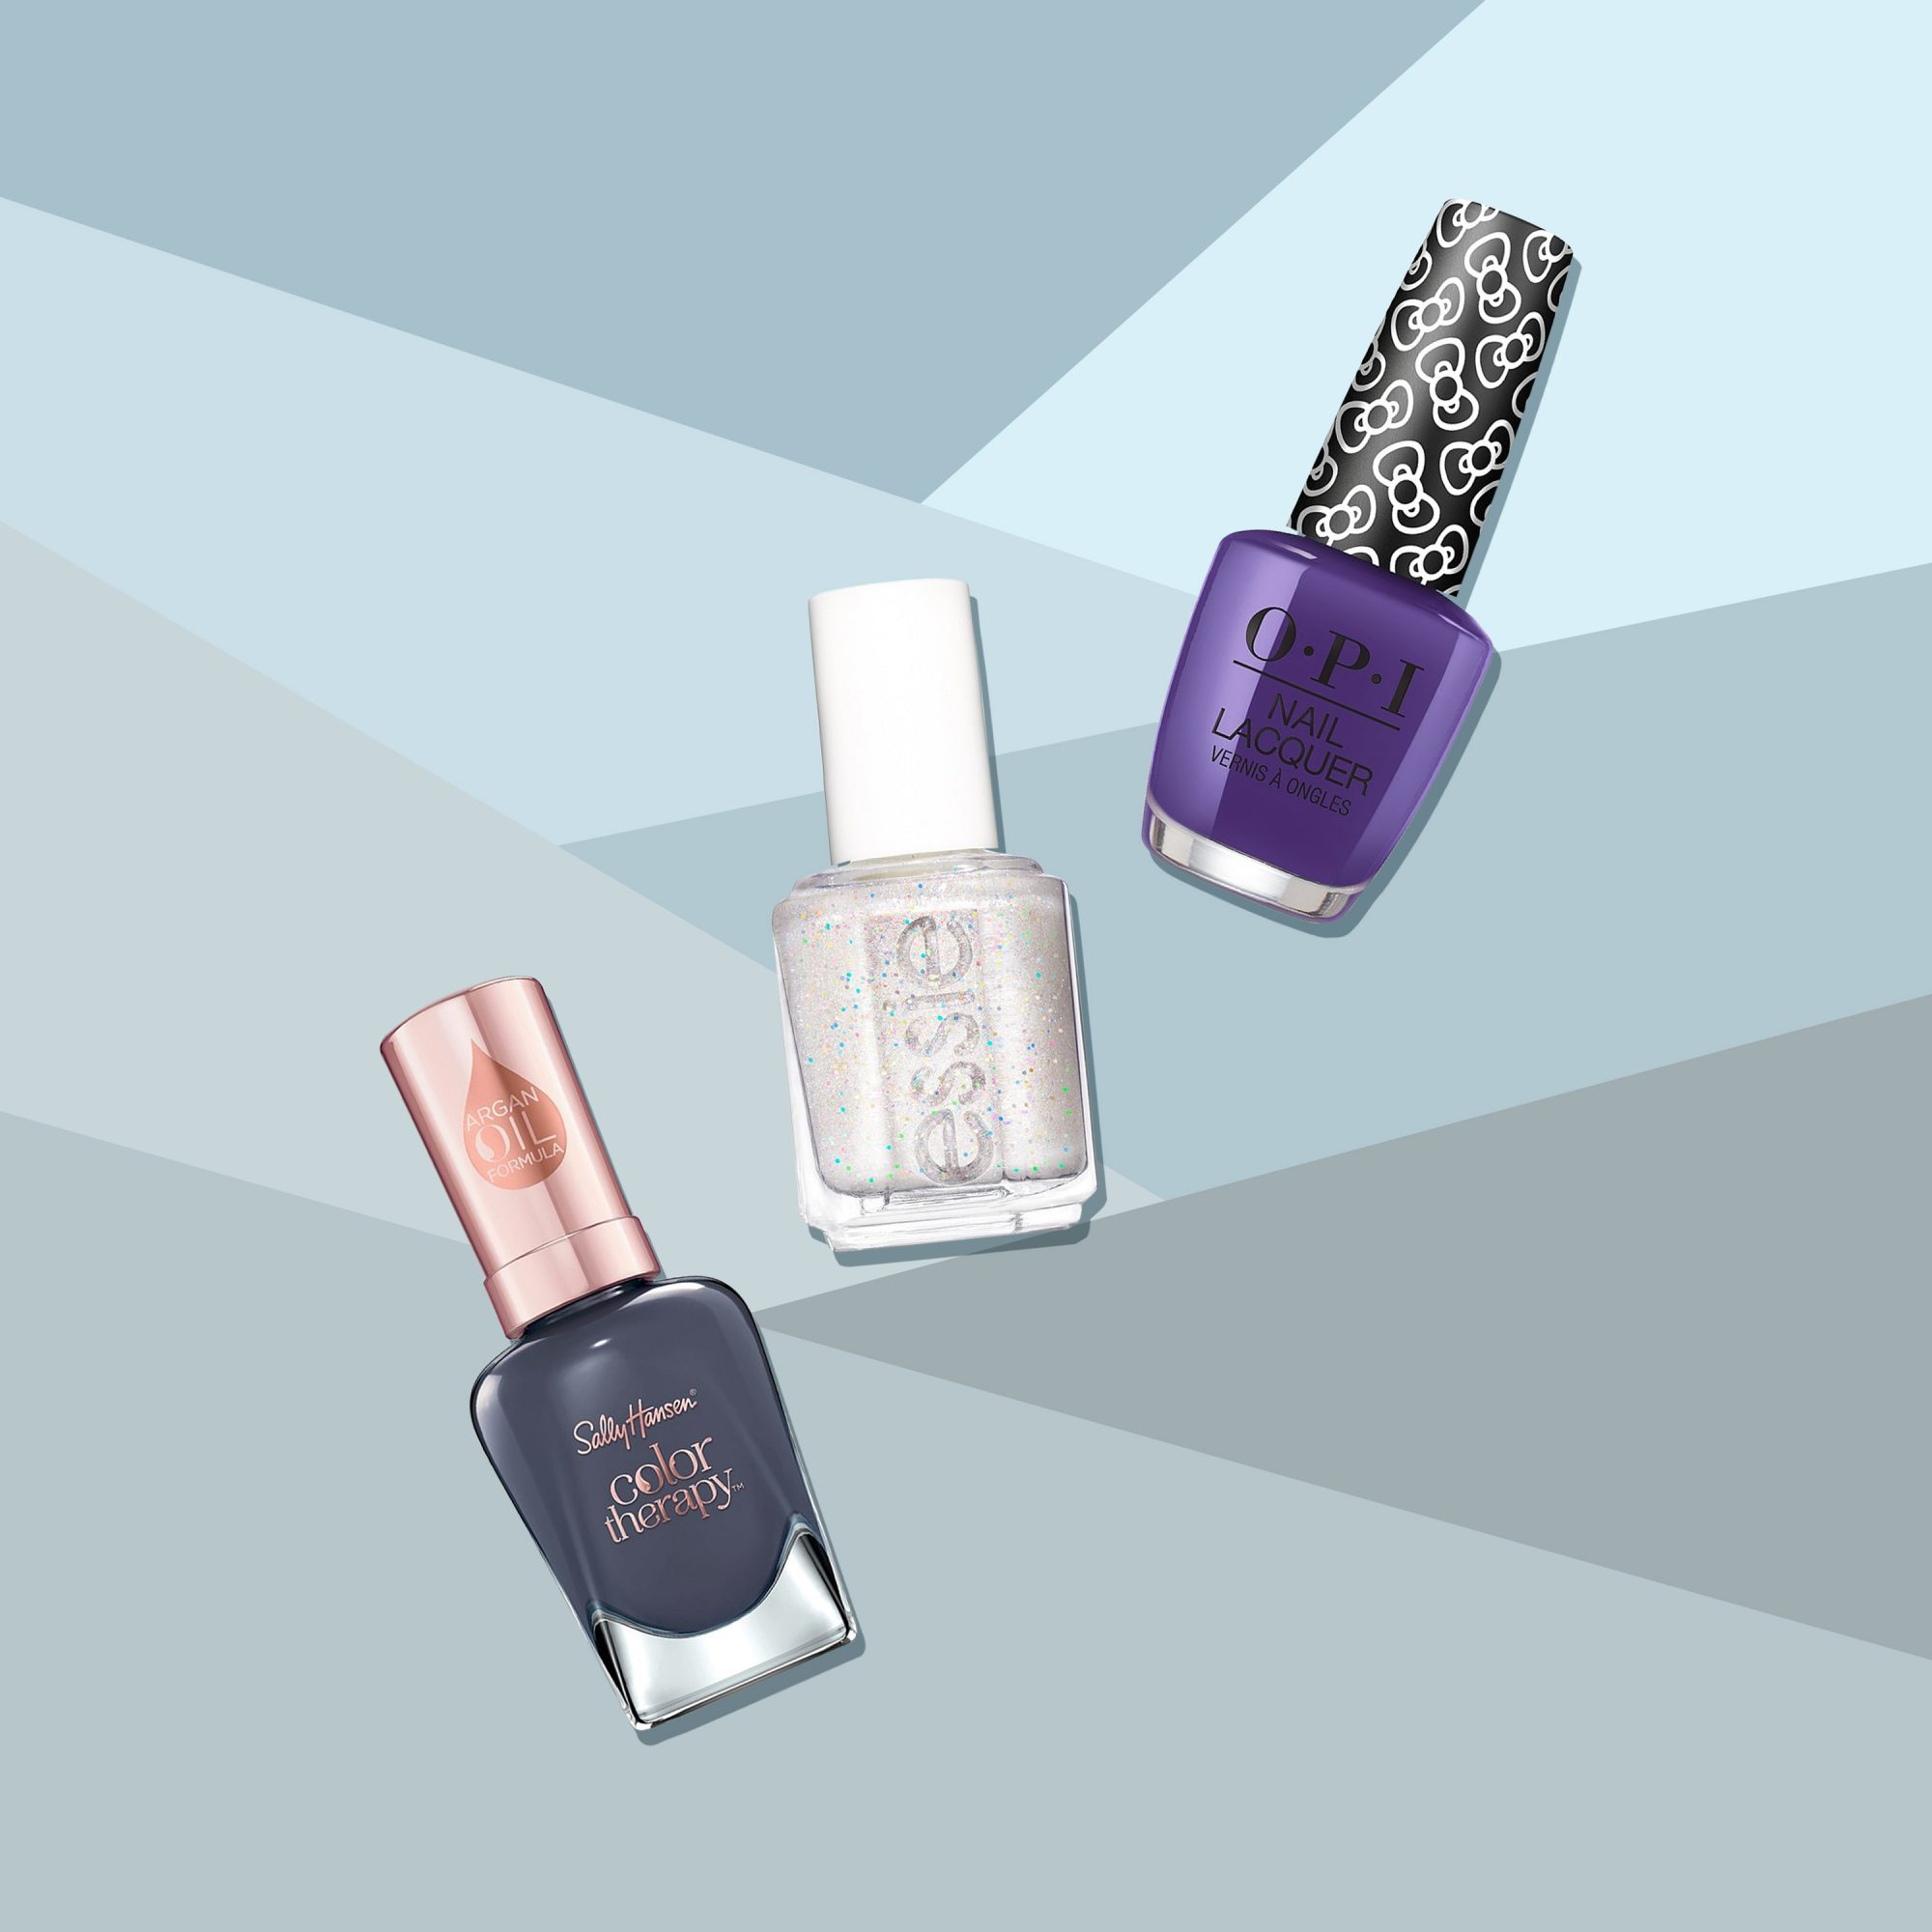 2020 Nail Polish Colors.The Best Nail Polish Colors For Winter 2020 Winter